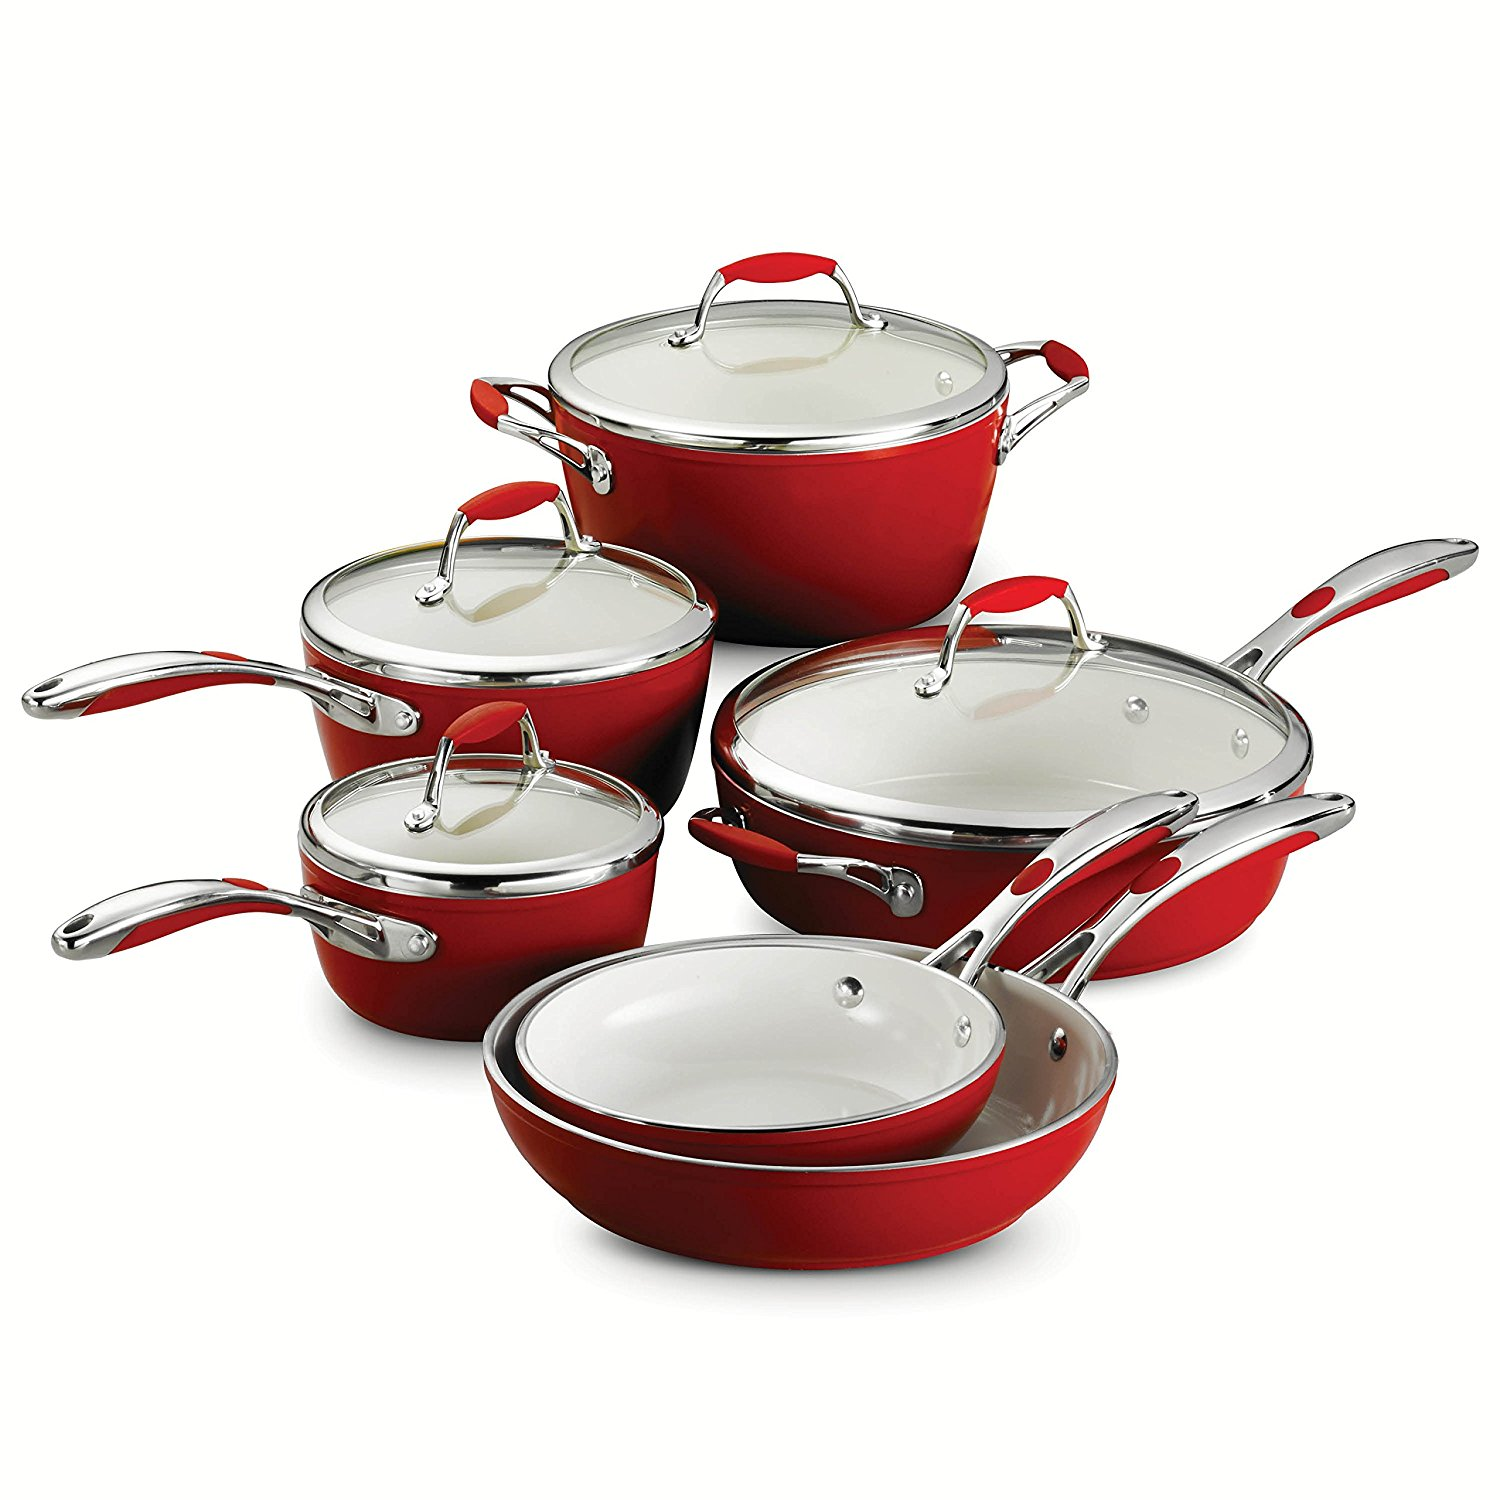 Tramontina 10-Piece Gourmet Cookware Set Review